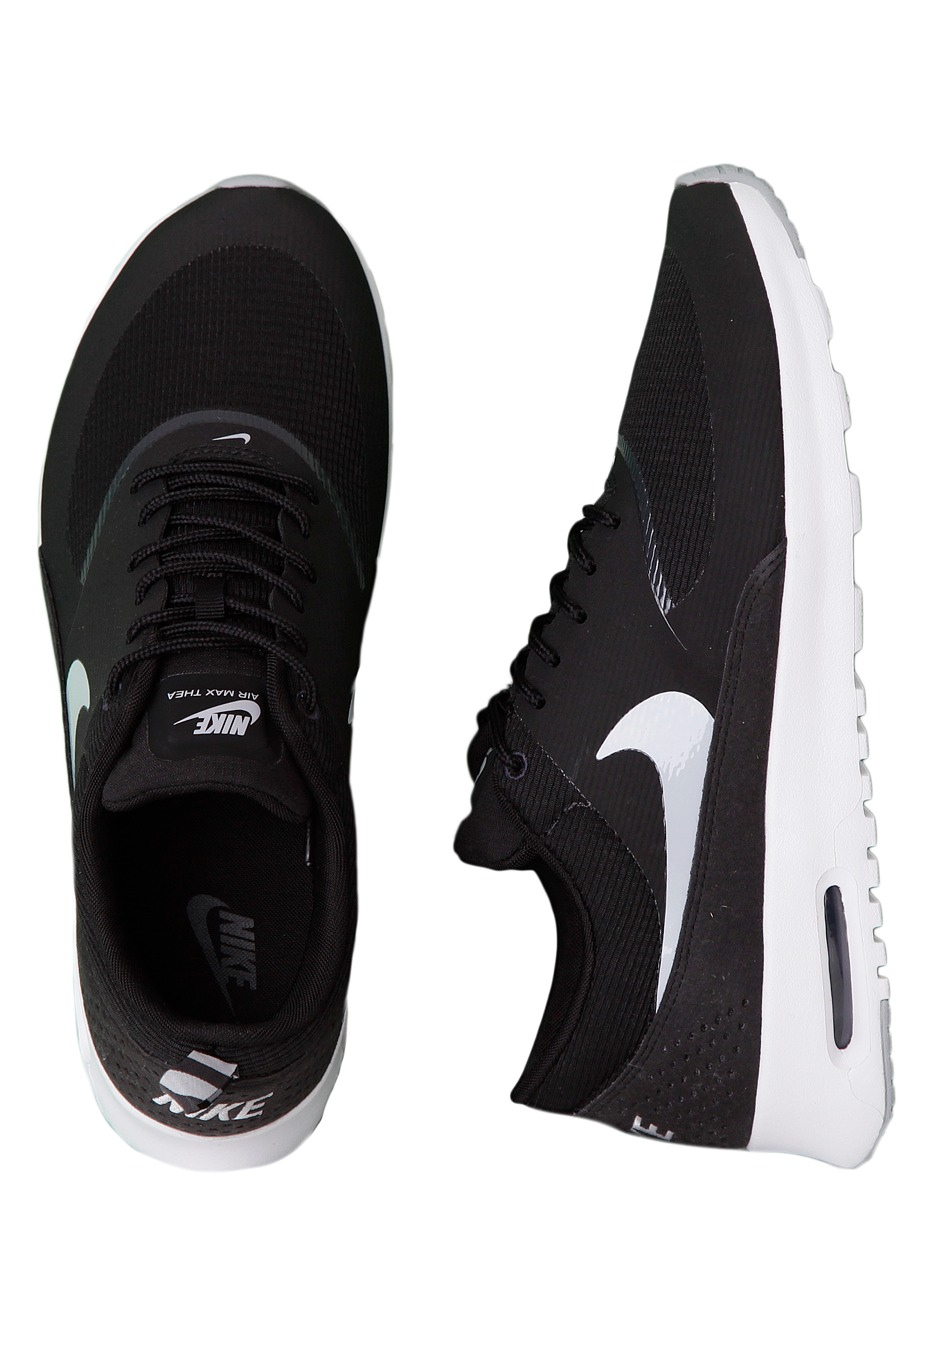 sneakers for cheap d737e 7ce07 Nike - Air Max Thea Black Wolf Grey Anthracite White - Shoes -  Impericon.com UK